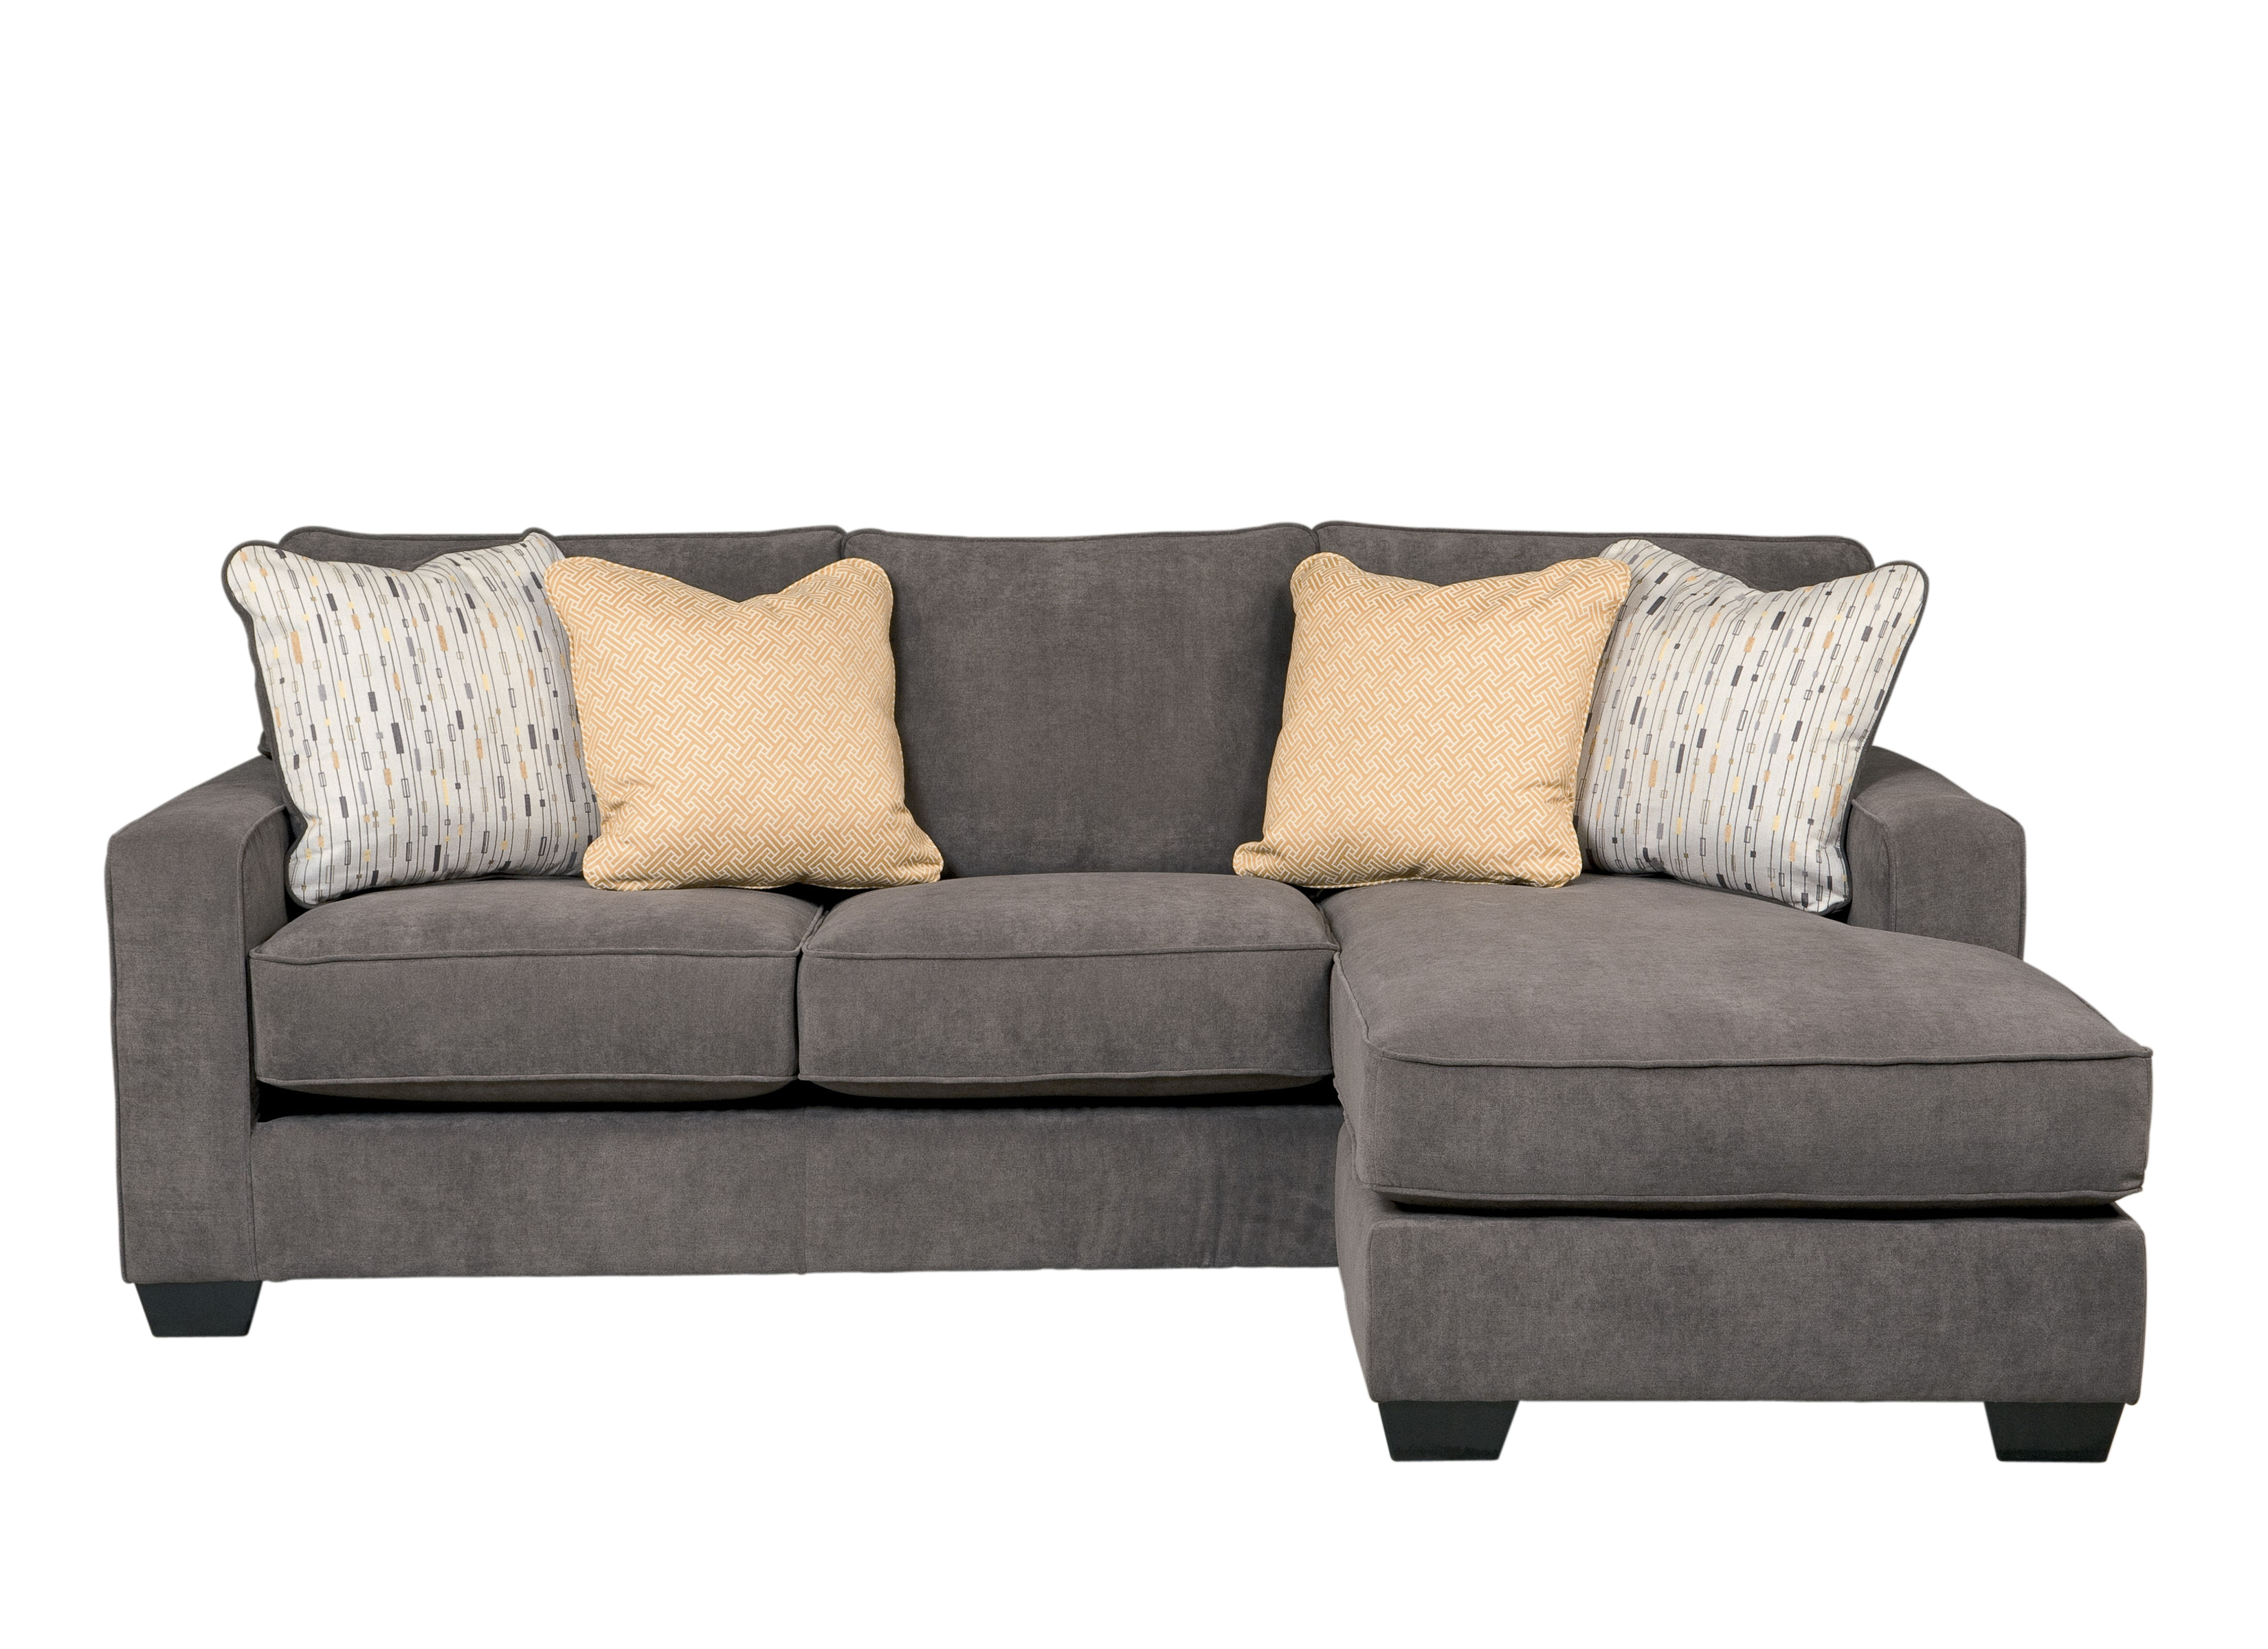 klaussner of sofa sectional piece hodan audrina with contemporary stunning aifaresidency additional chaise com